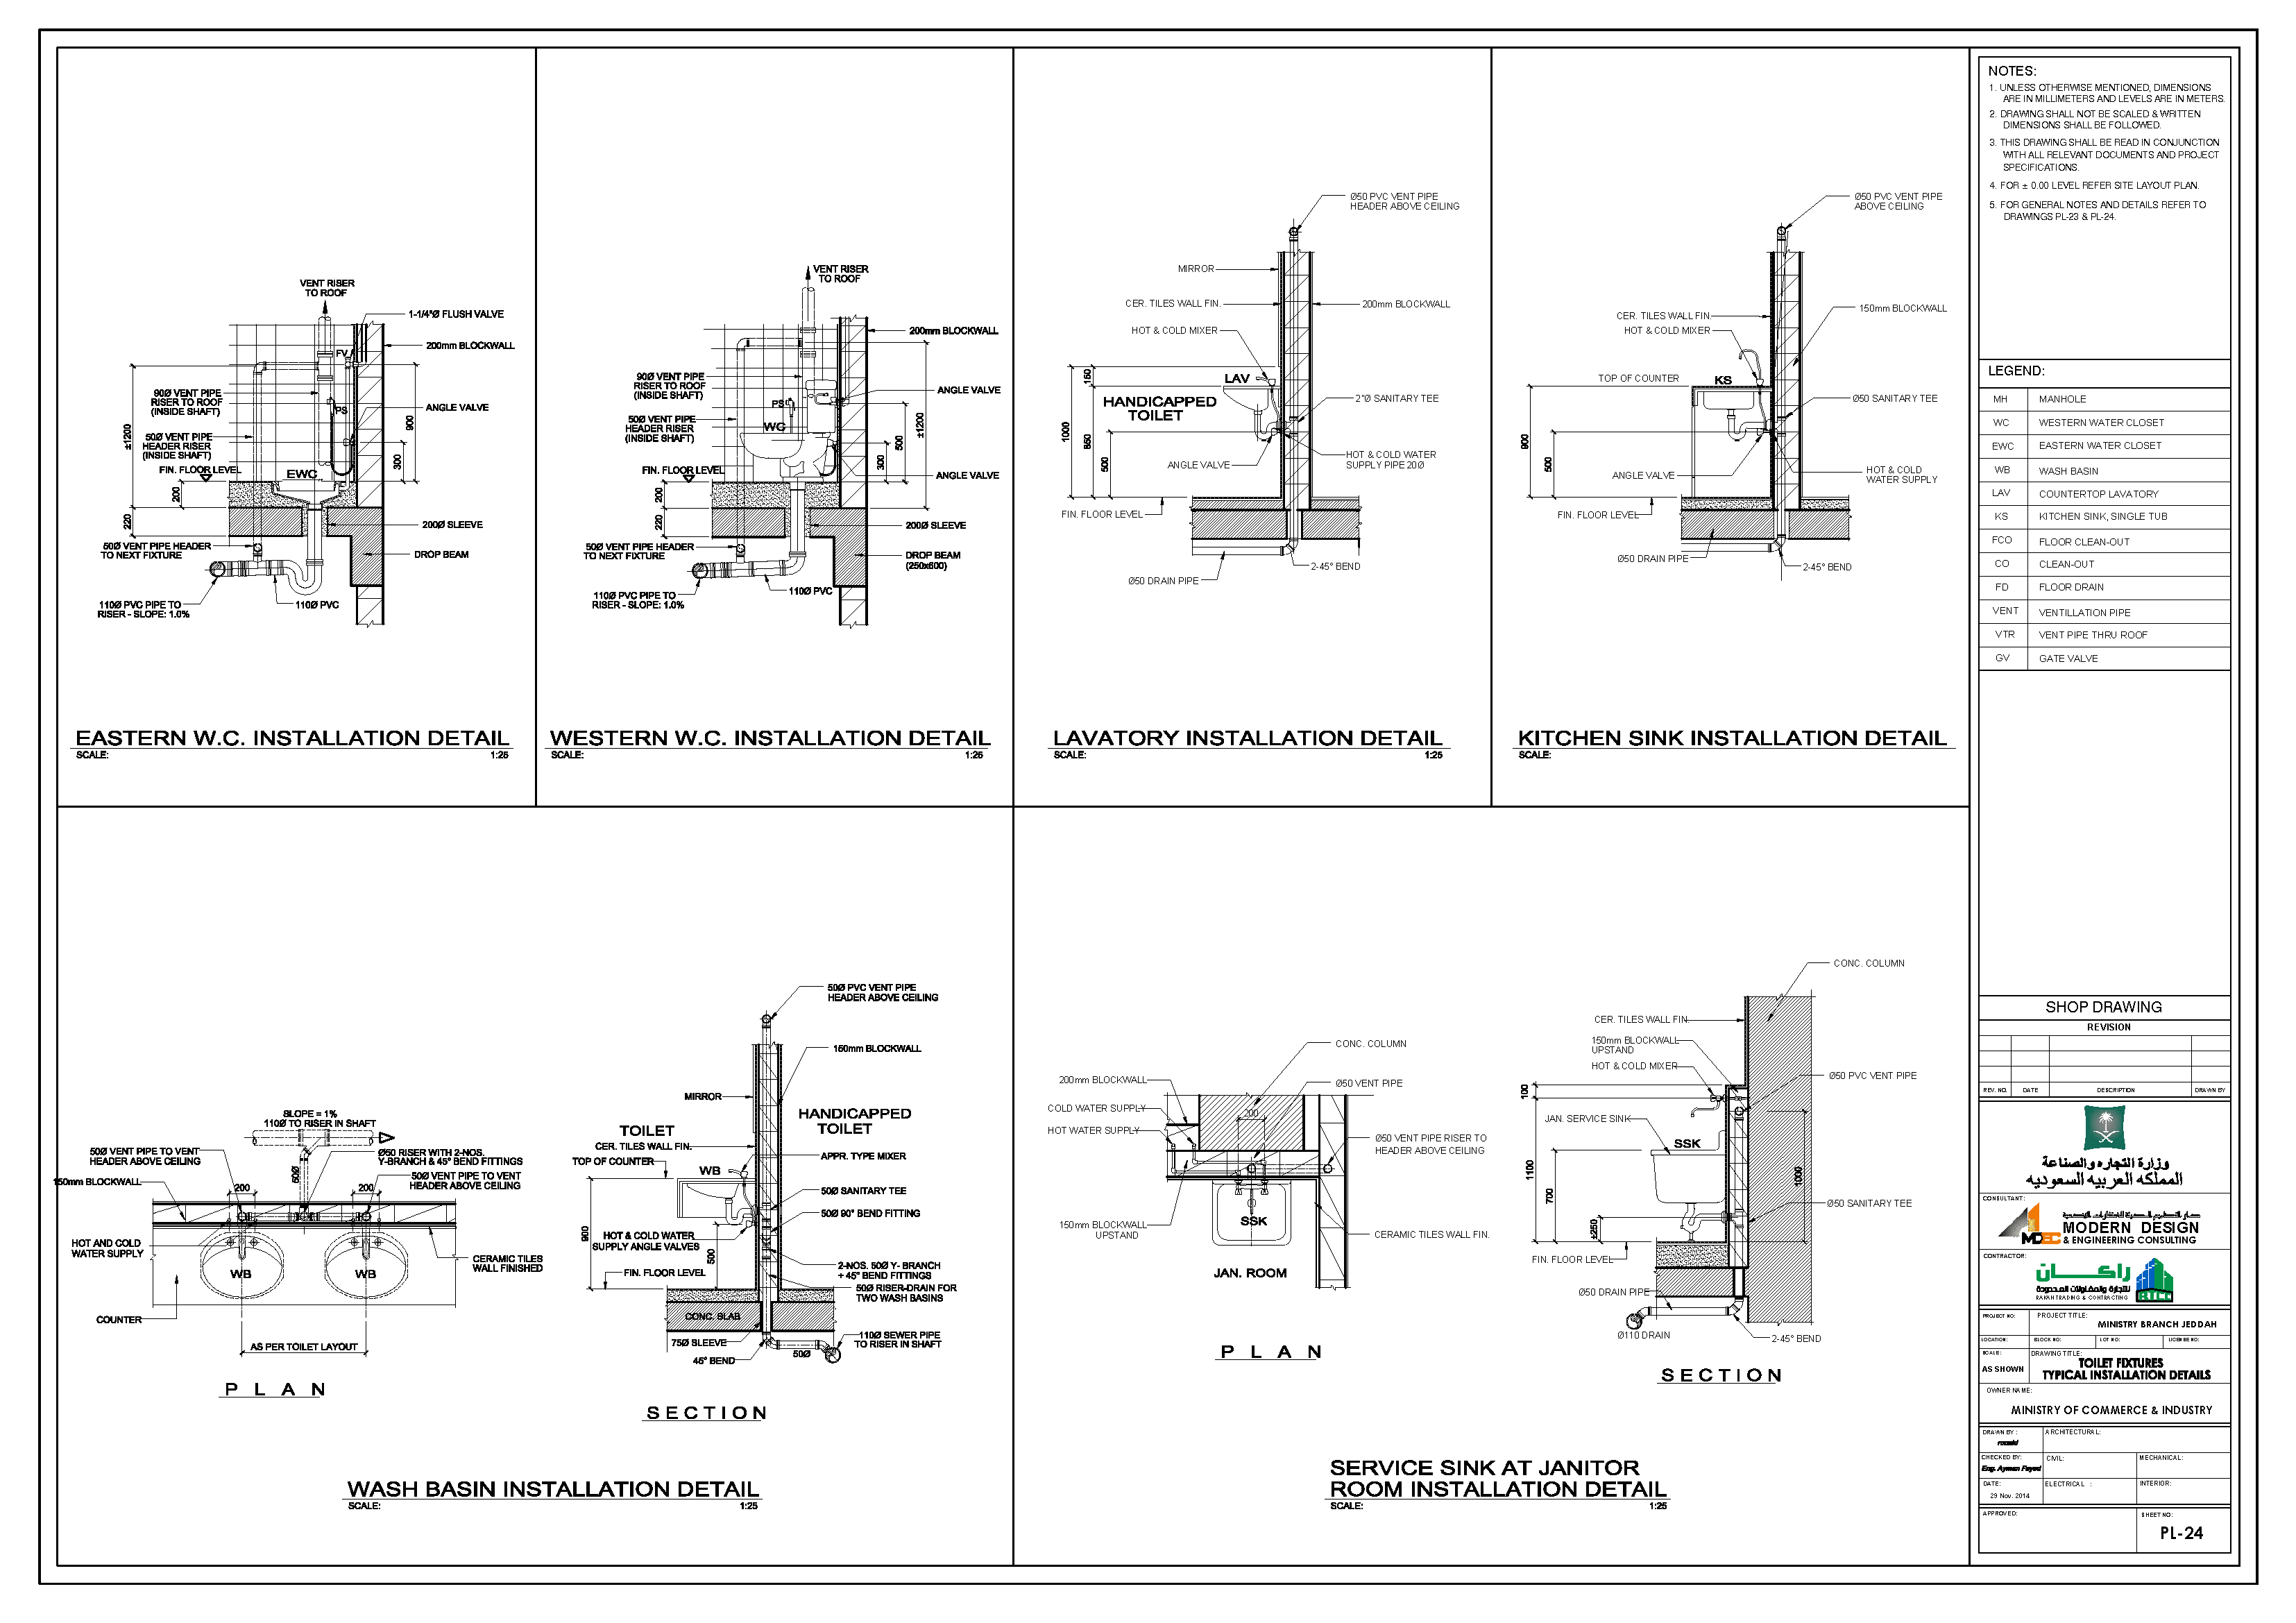 MECHANICAL & PLUMBING DRAWINGS